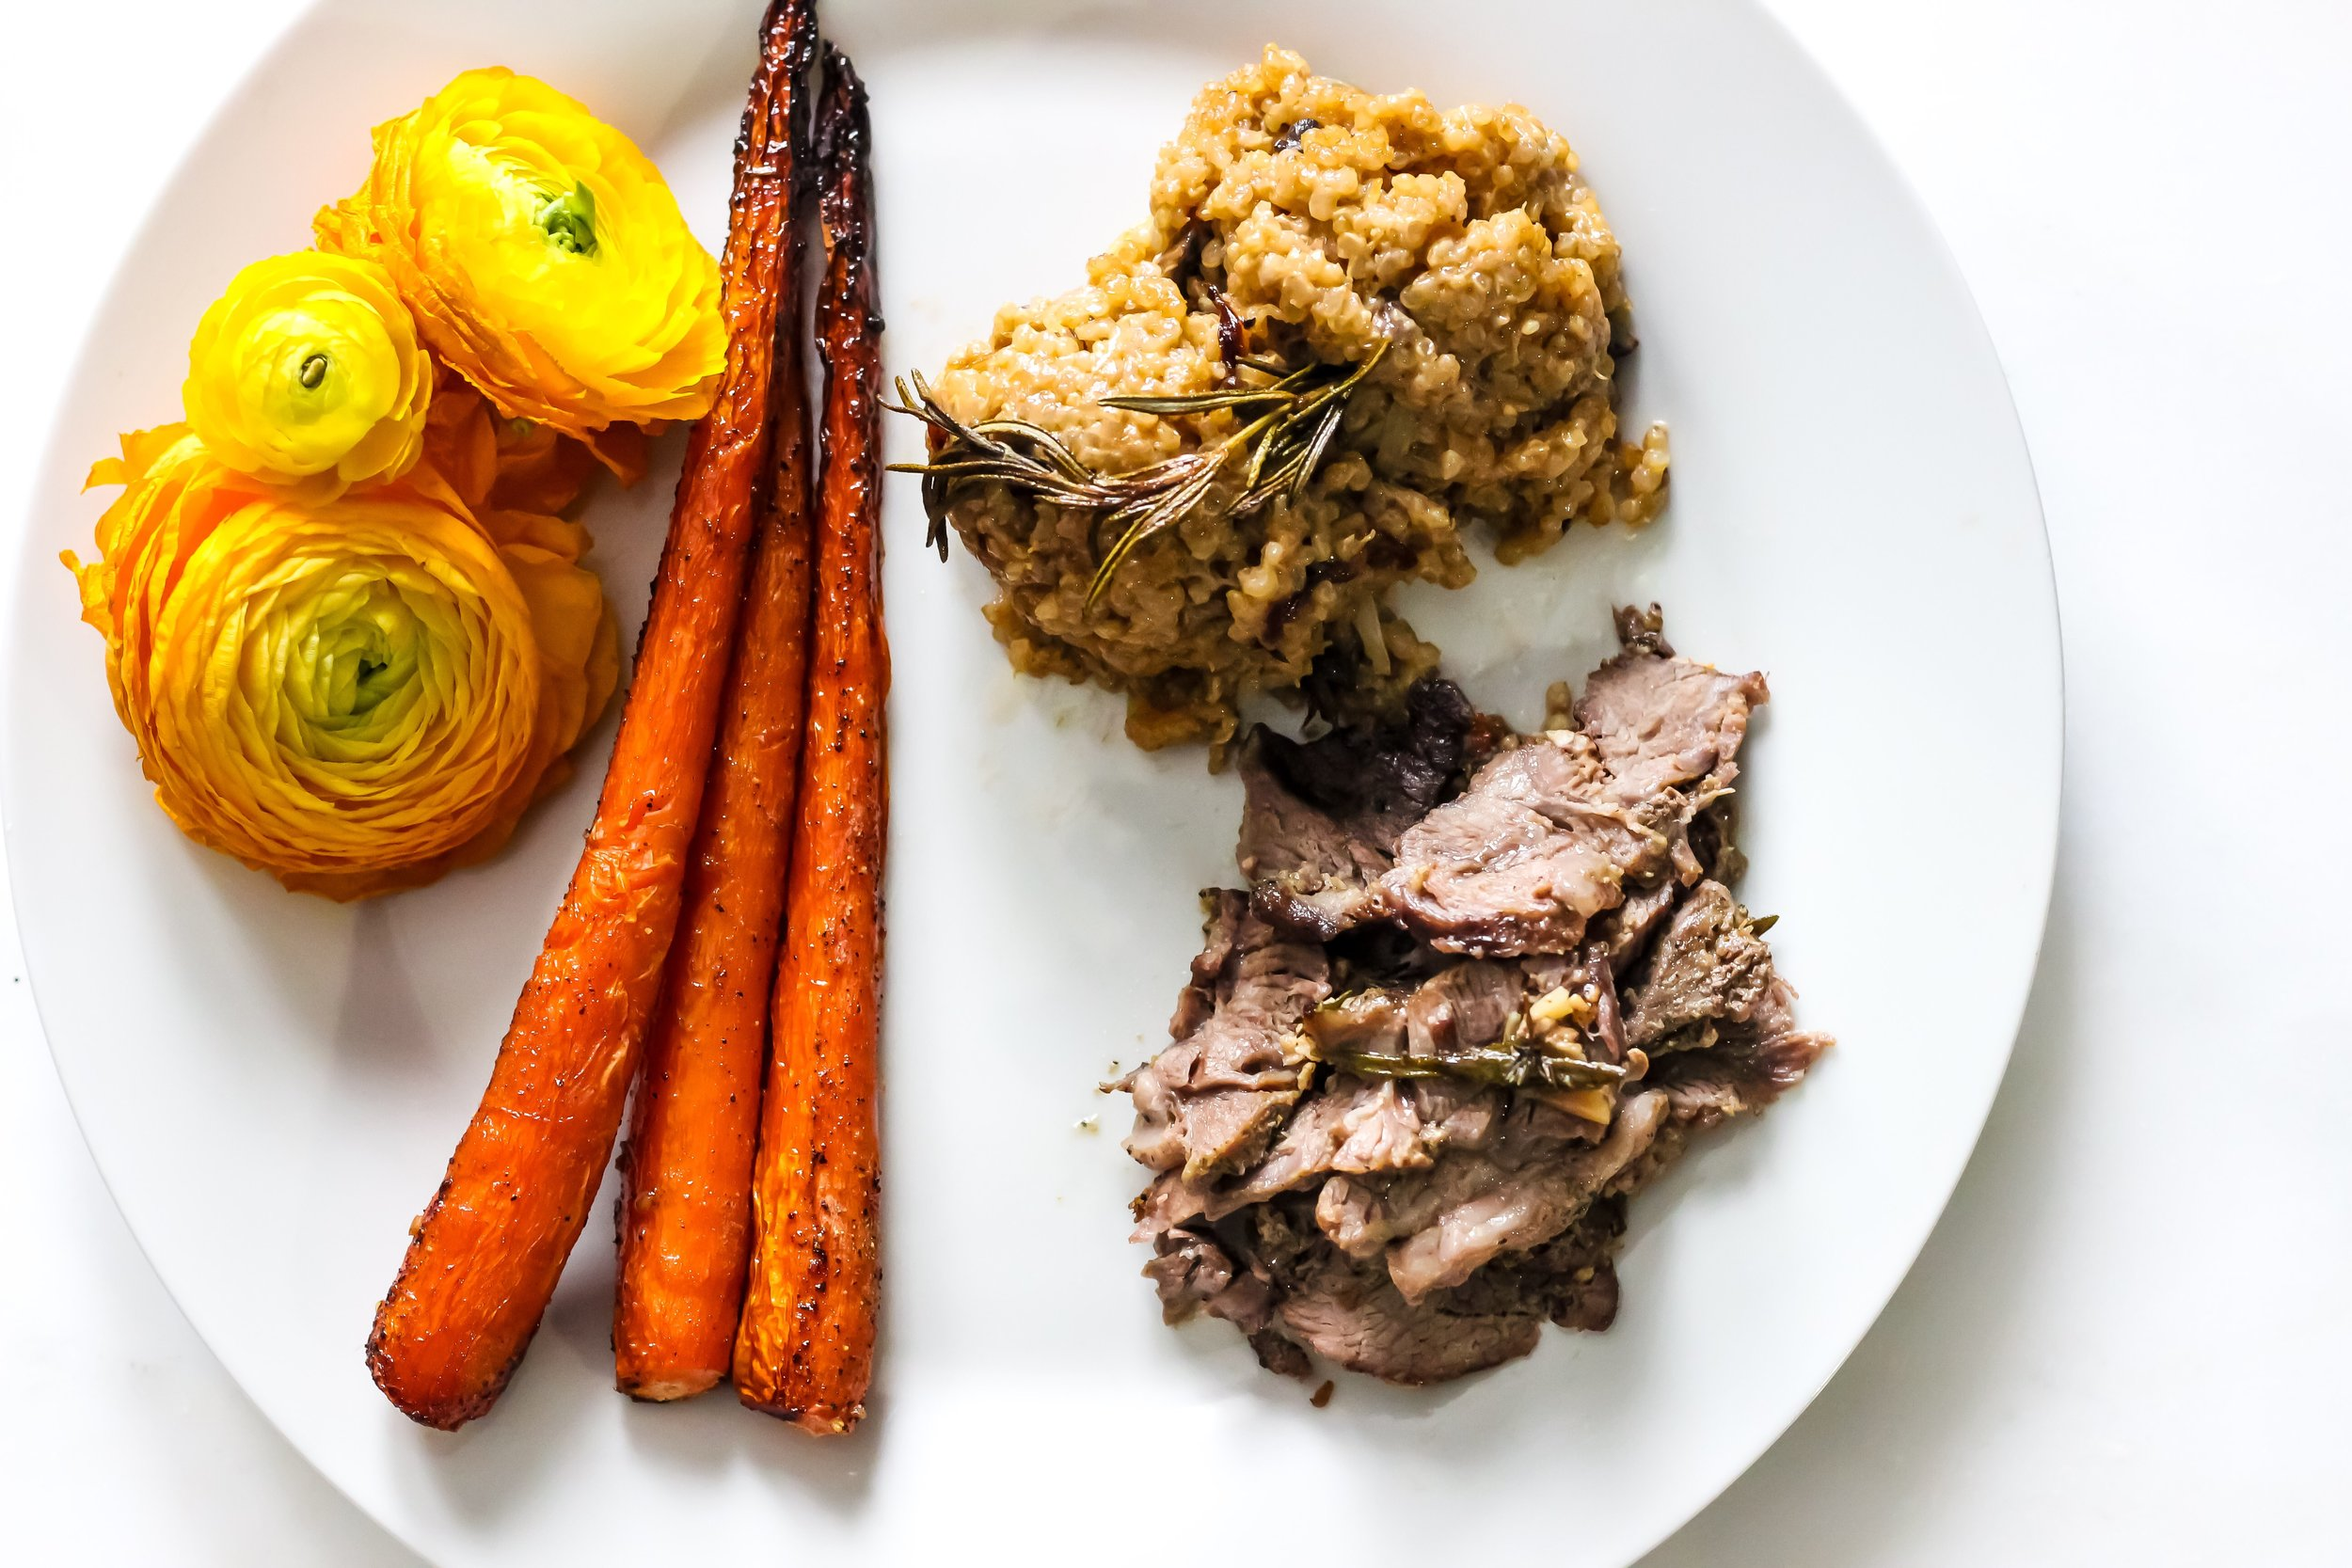 Garlic Herb Stuffed Lamb - with Honey Roasted Carrots and Mushroom Quinoa